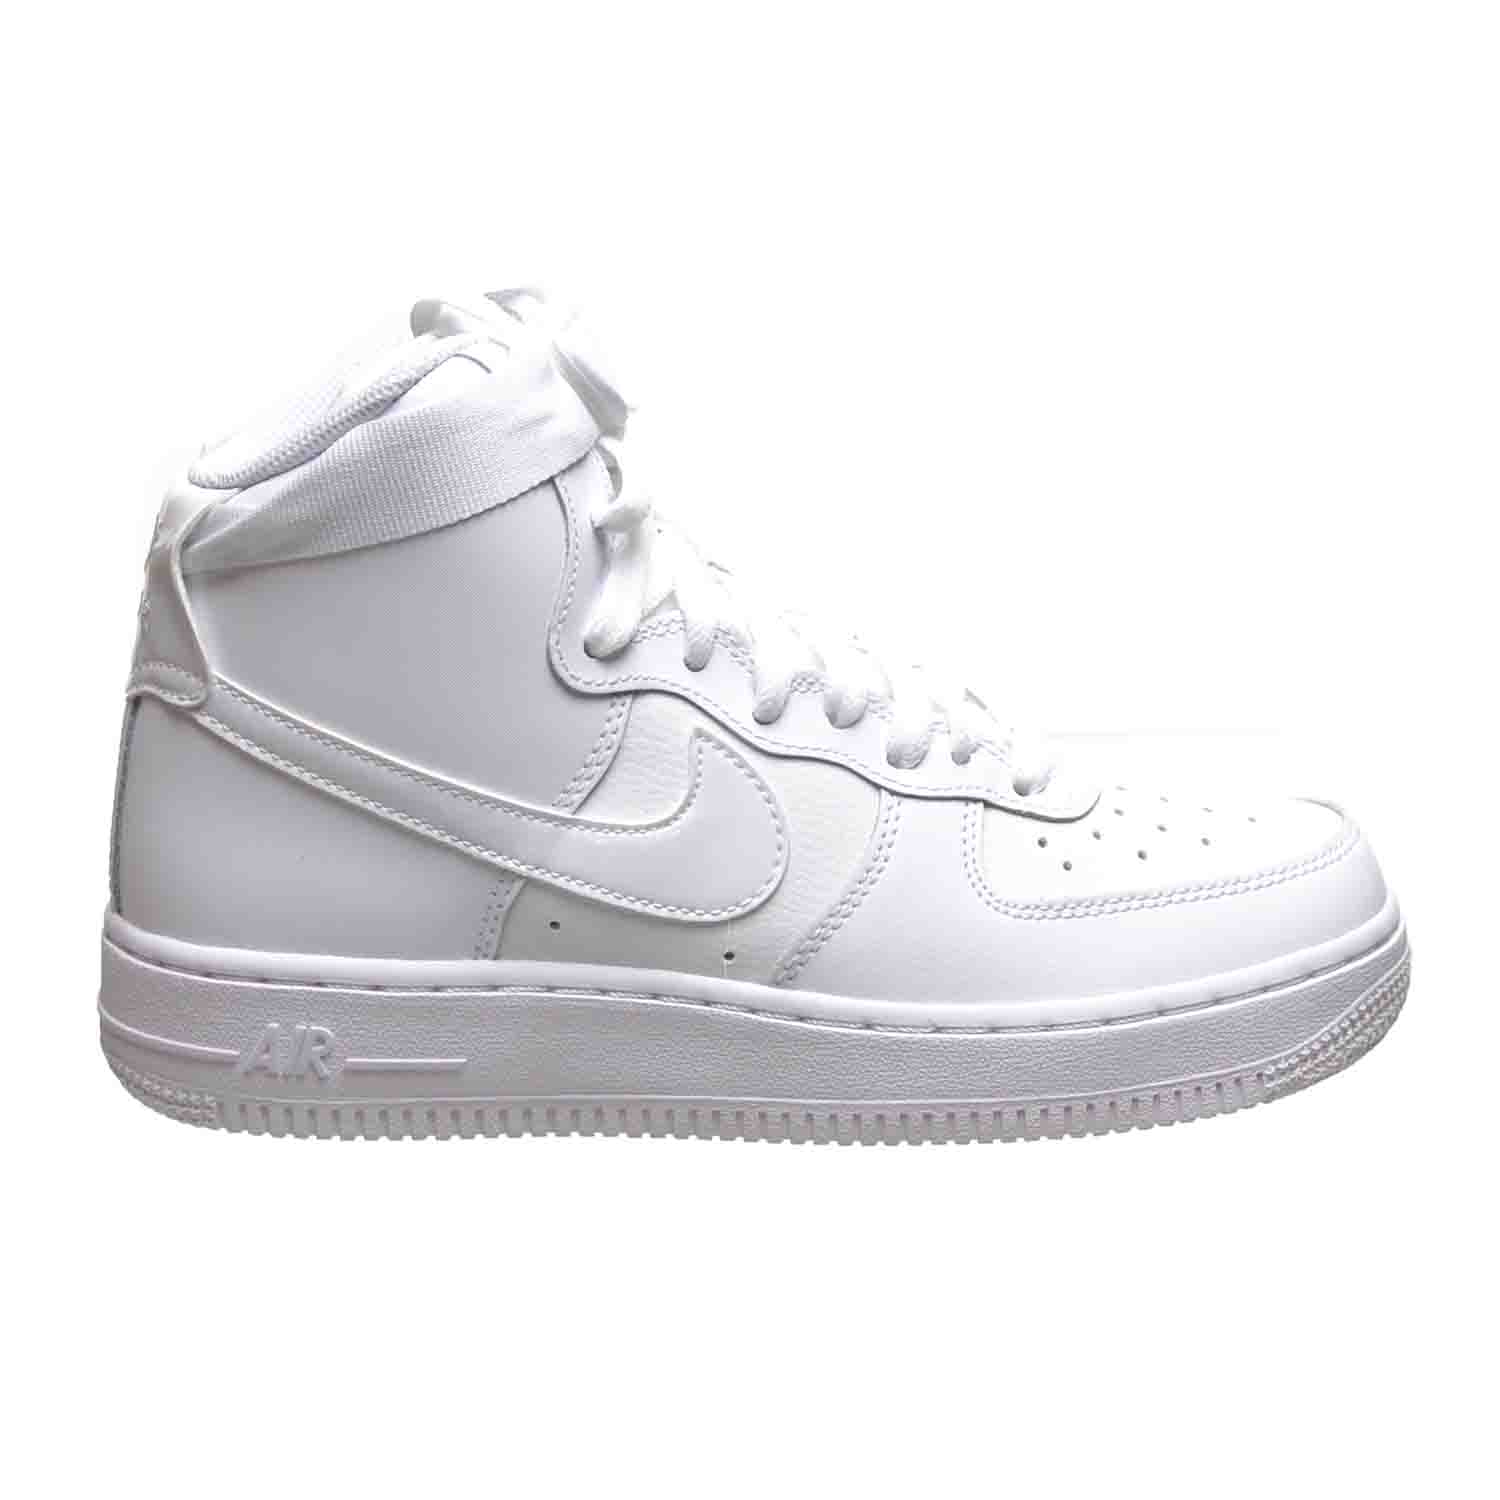 Details about Nike Air Force 1 High (GS) Big Kids Shoes White 653998 100